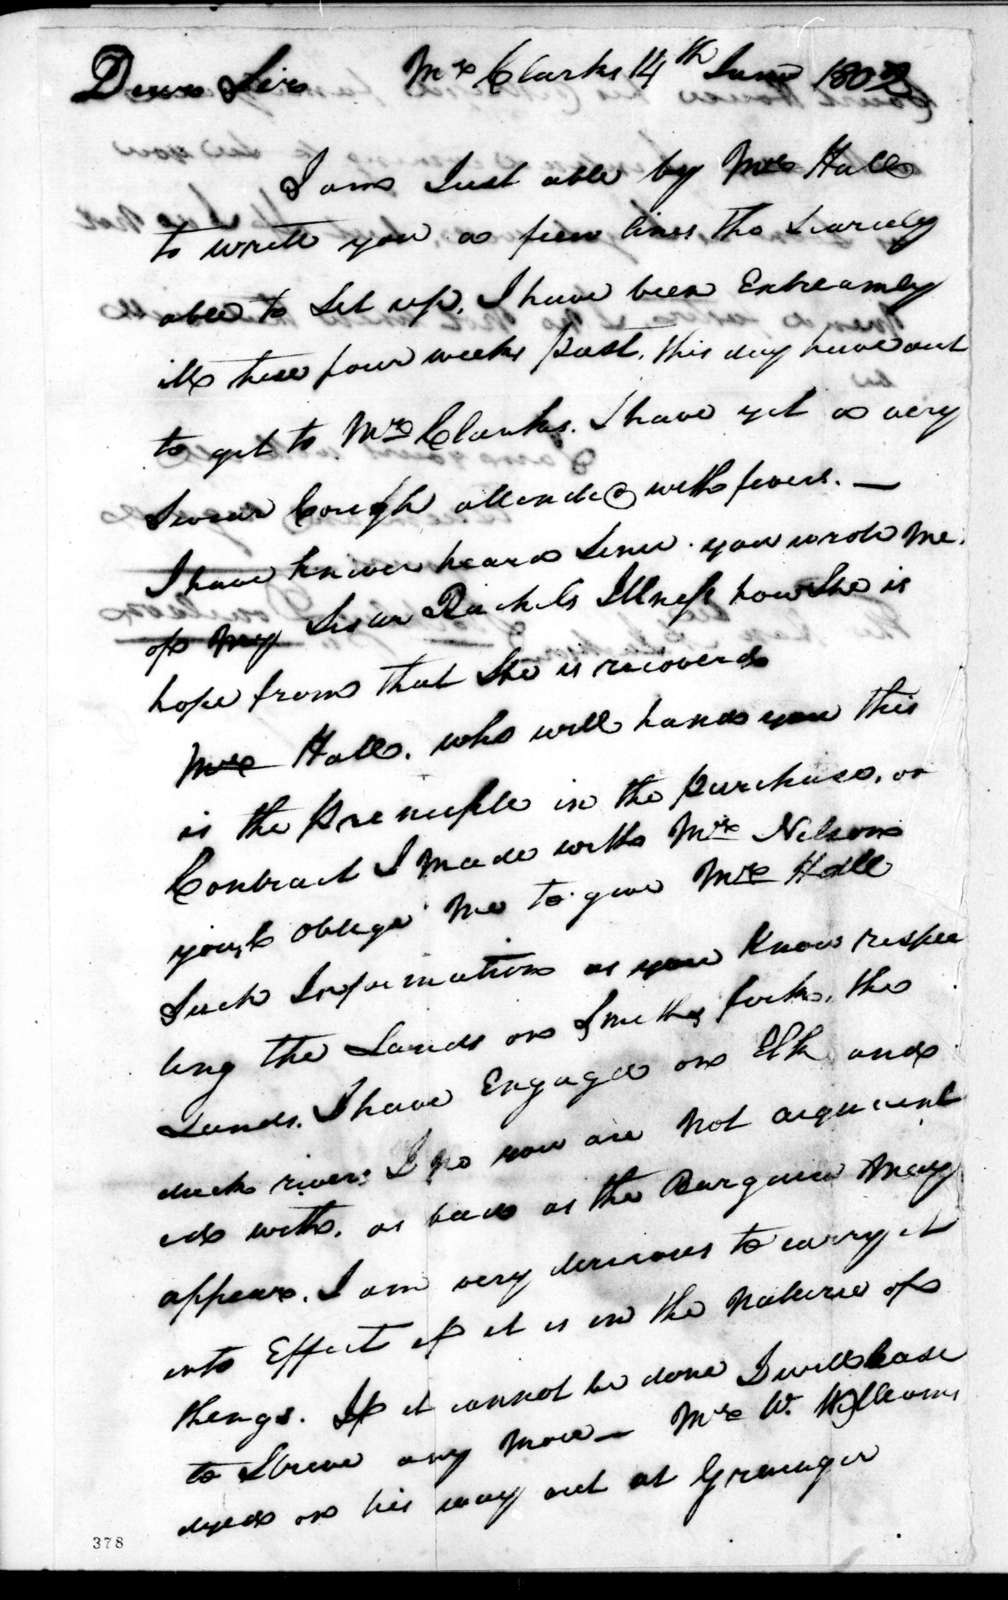 Stockley Donelson to Andrew Jackson, June 14, 1802